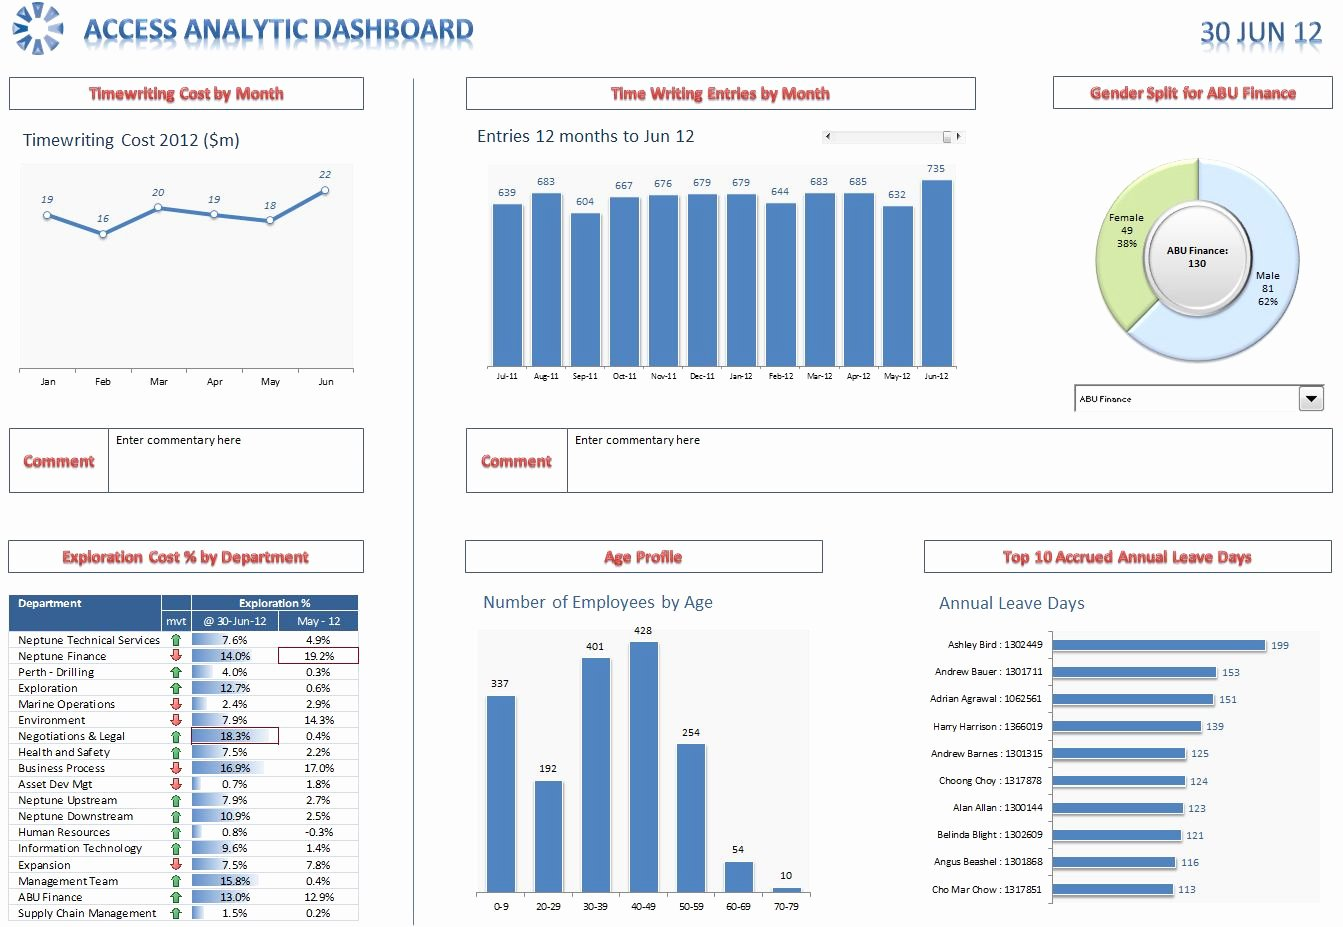 Human Resources Dashboard Excel Template New Excel Dashboards and Reports Access Analytic